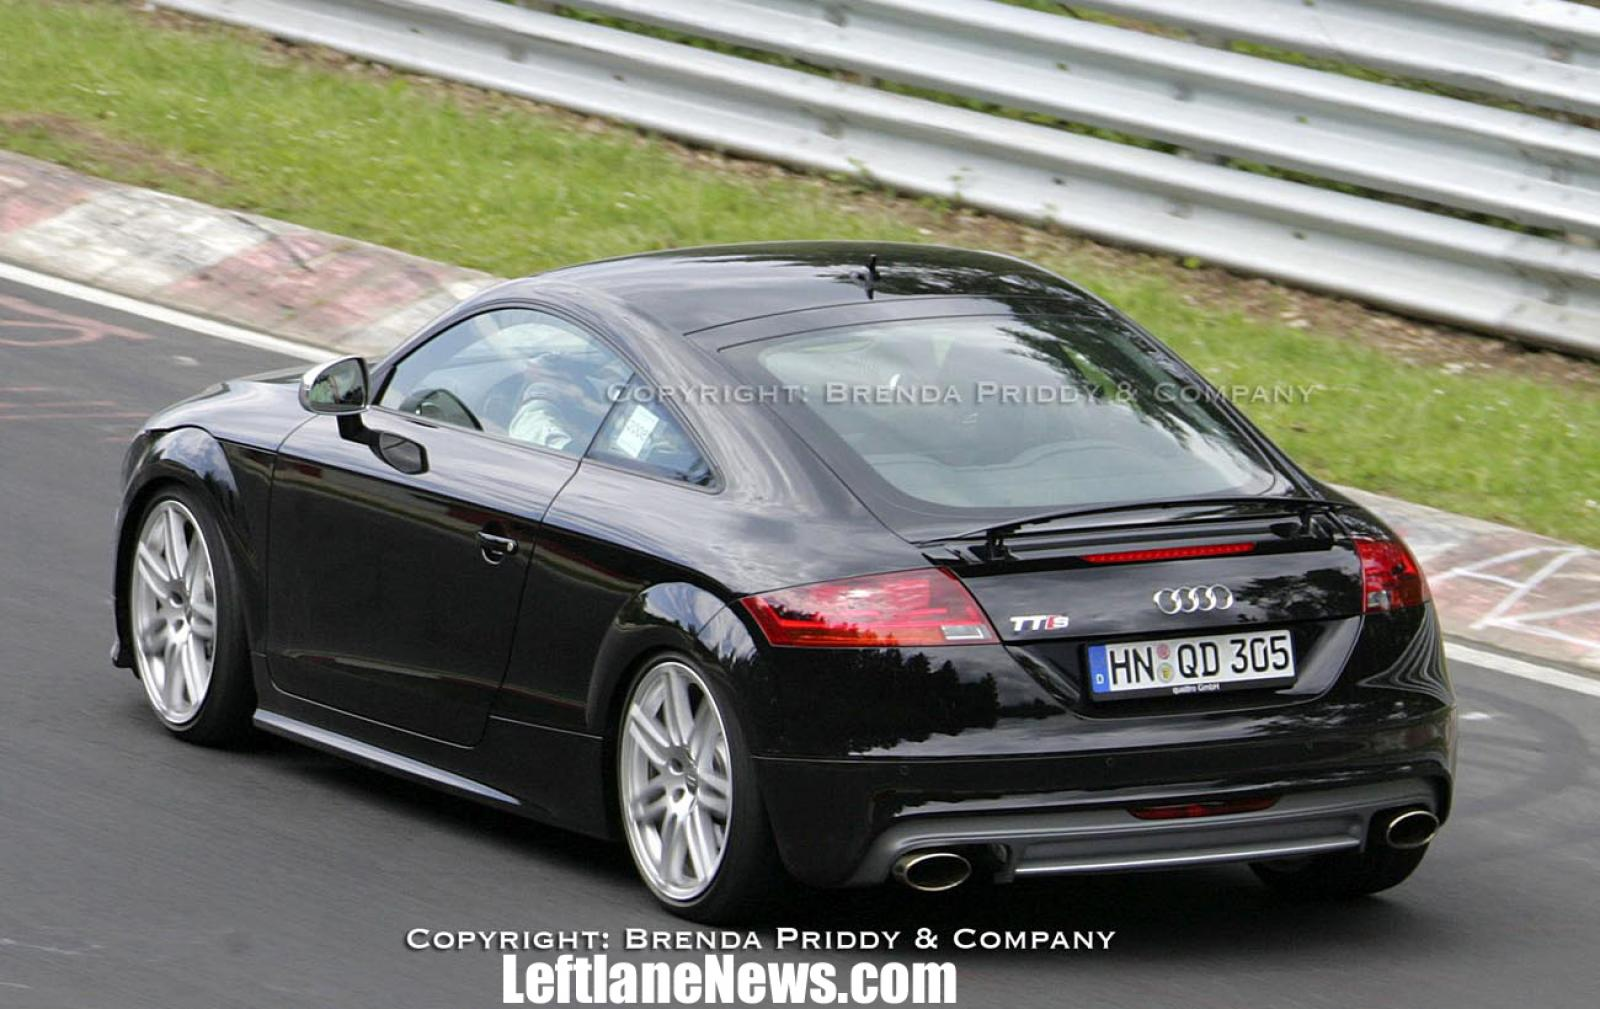 2010 audi tt information and photos zombiedrive. Black Bedroom Furniture Sets. Home Design Ideas